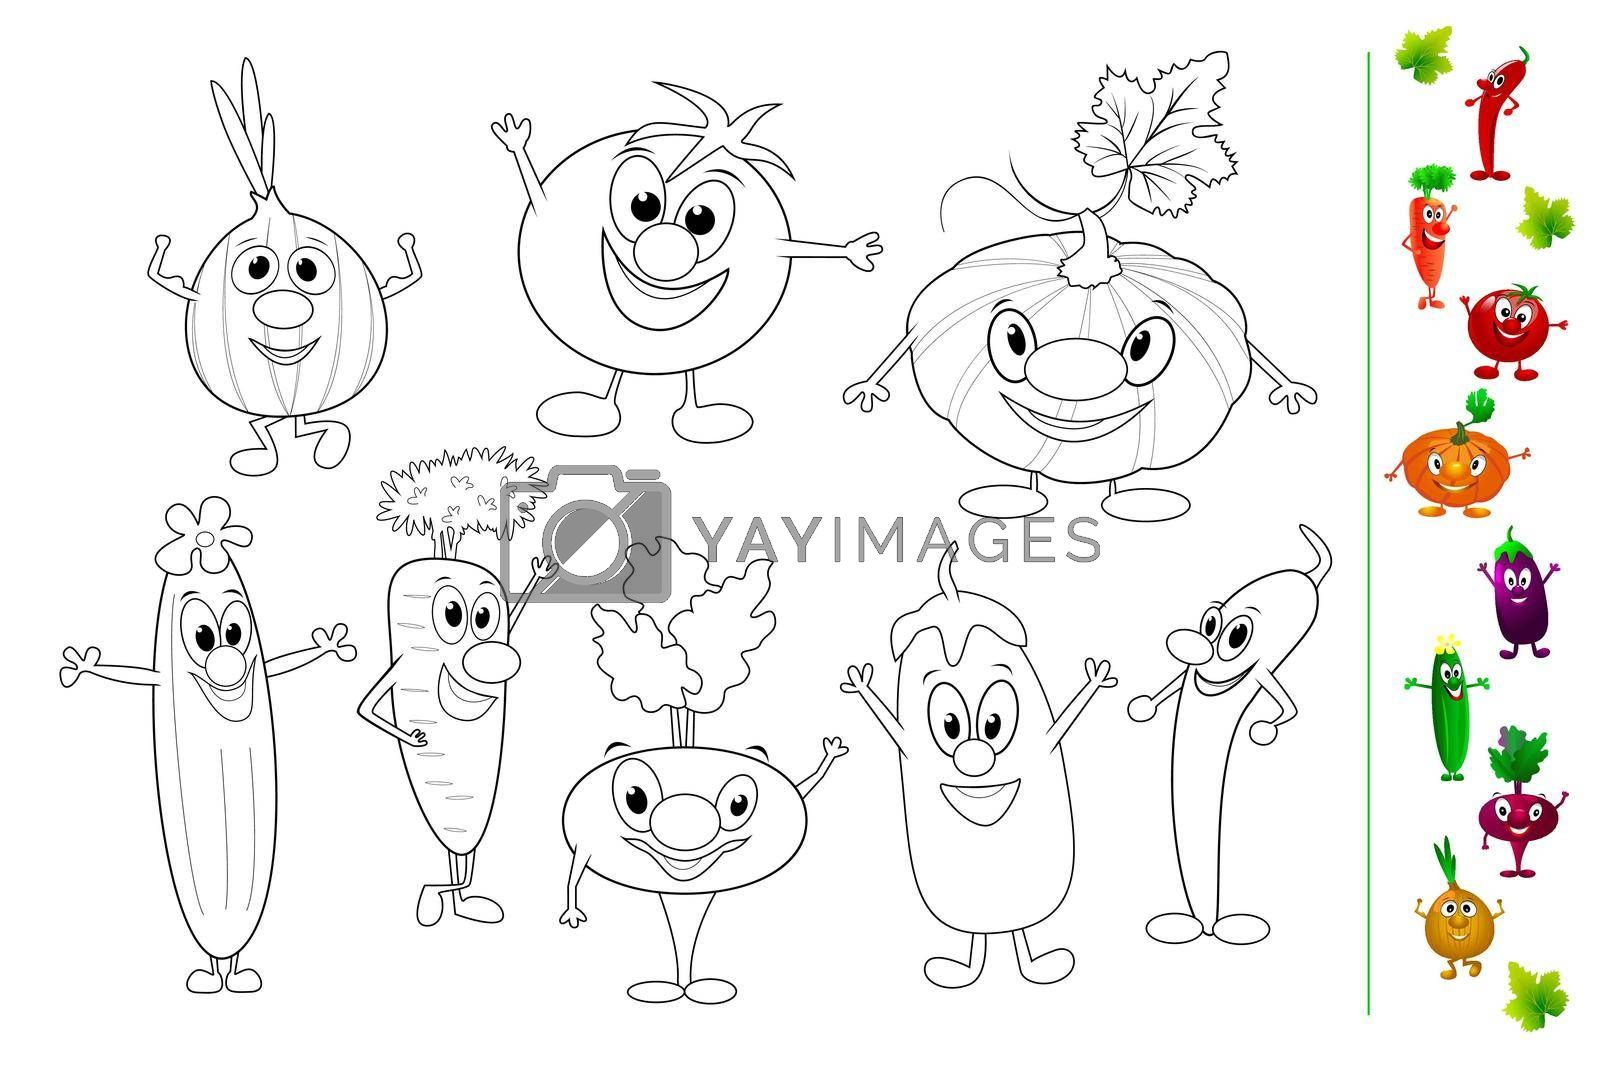 Royalty free image of Funny vegetables coloring book by liolle